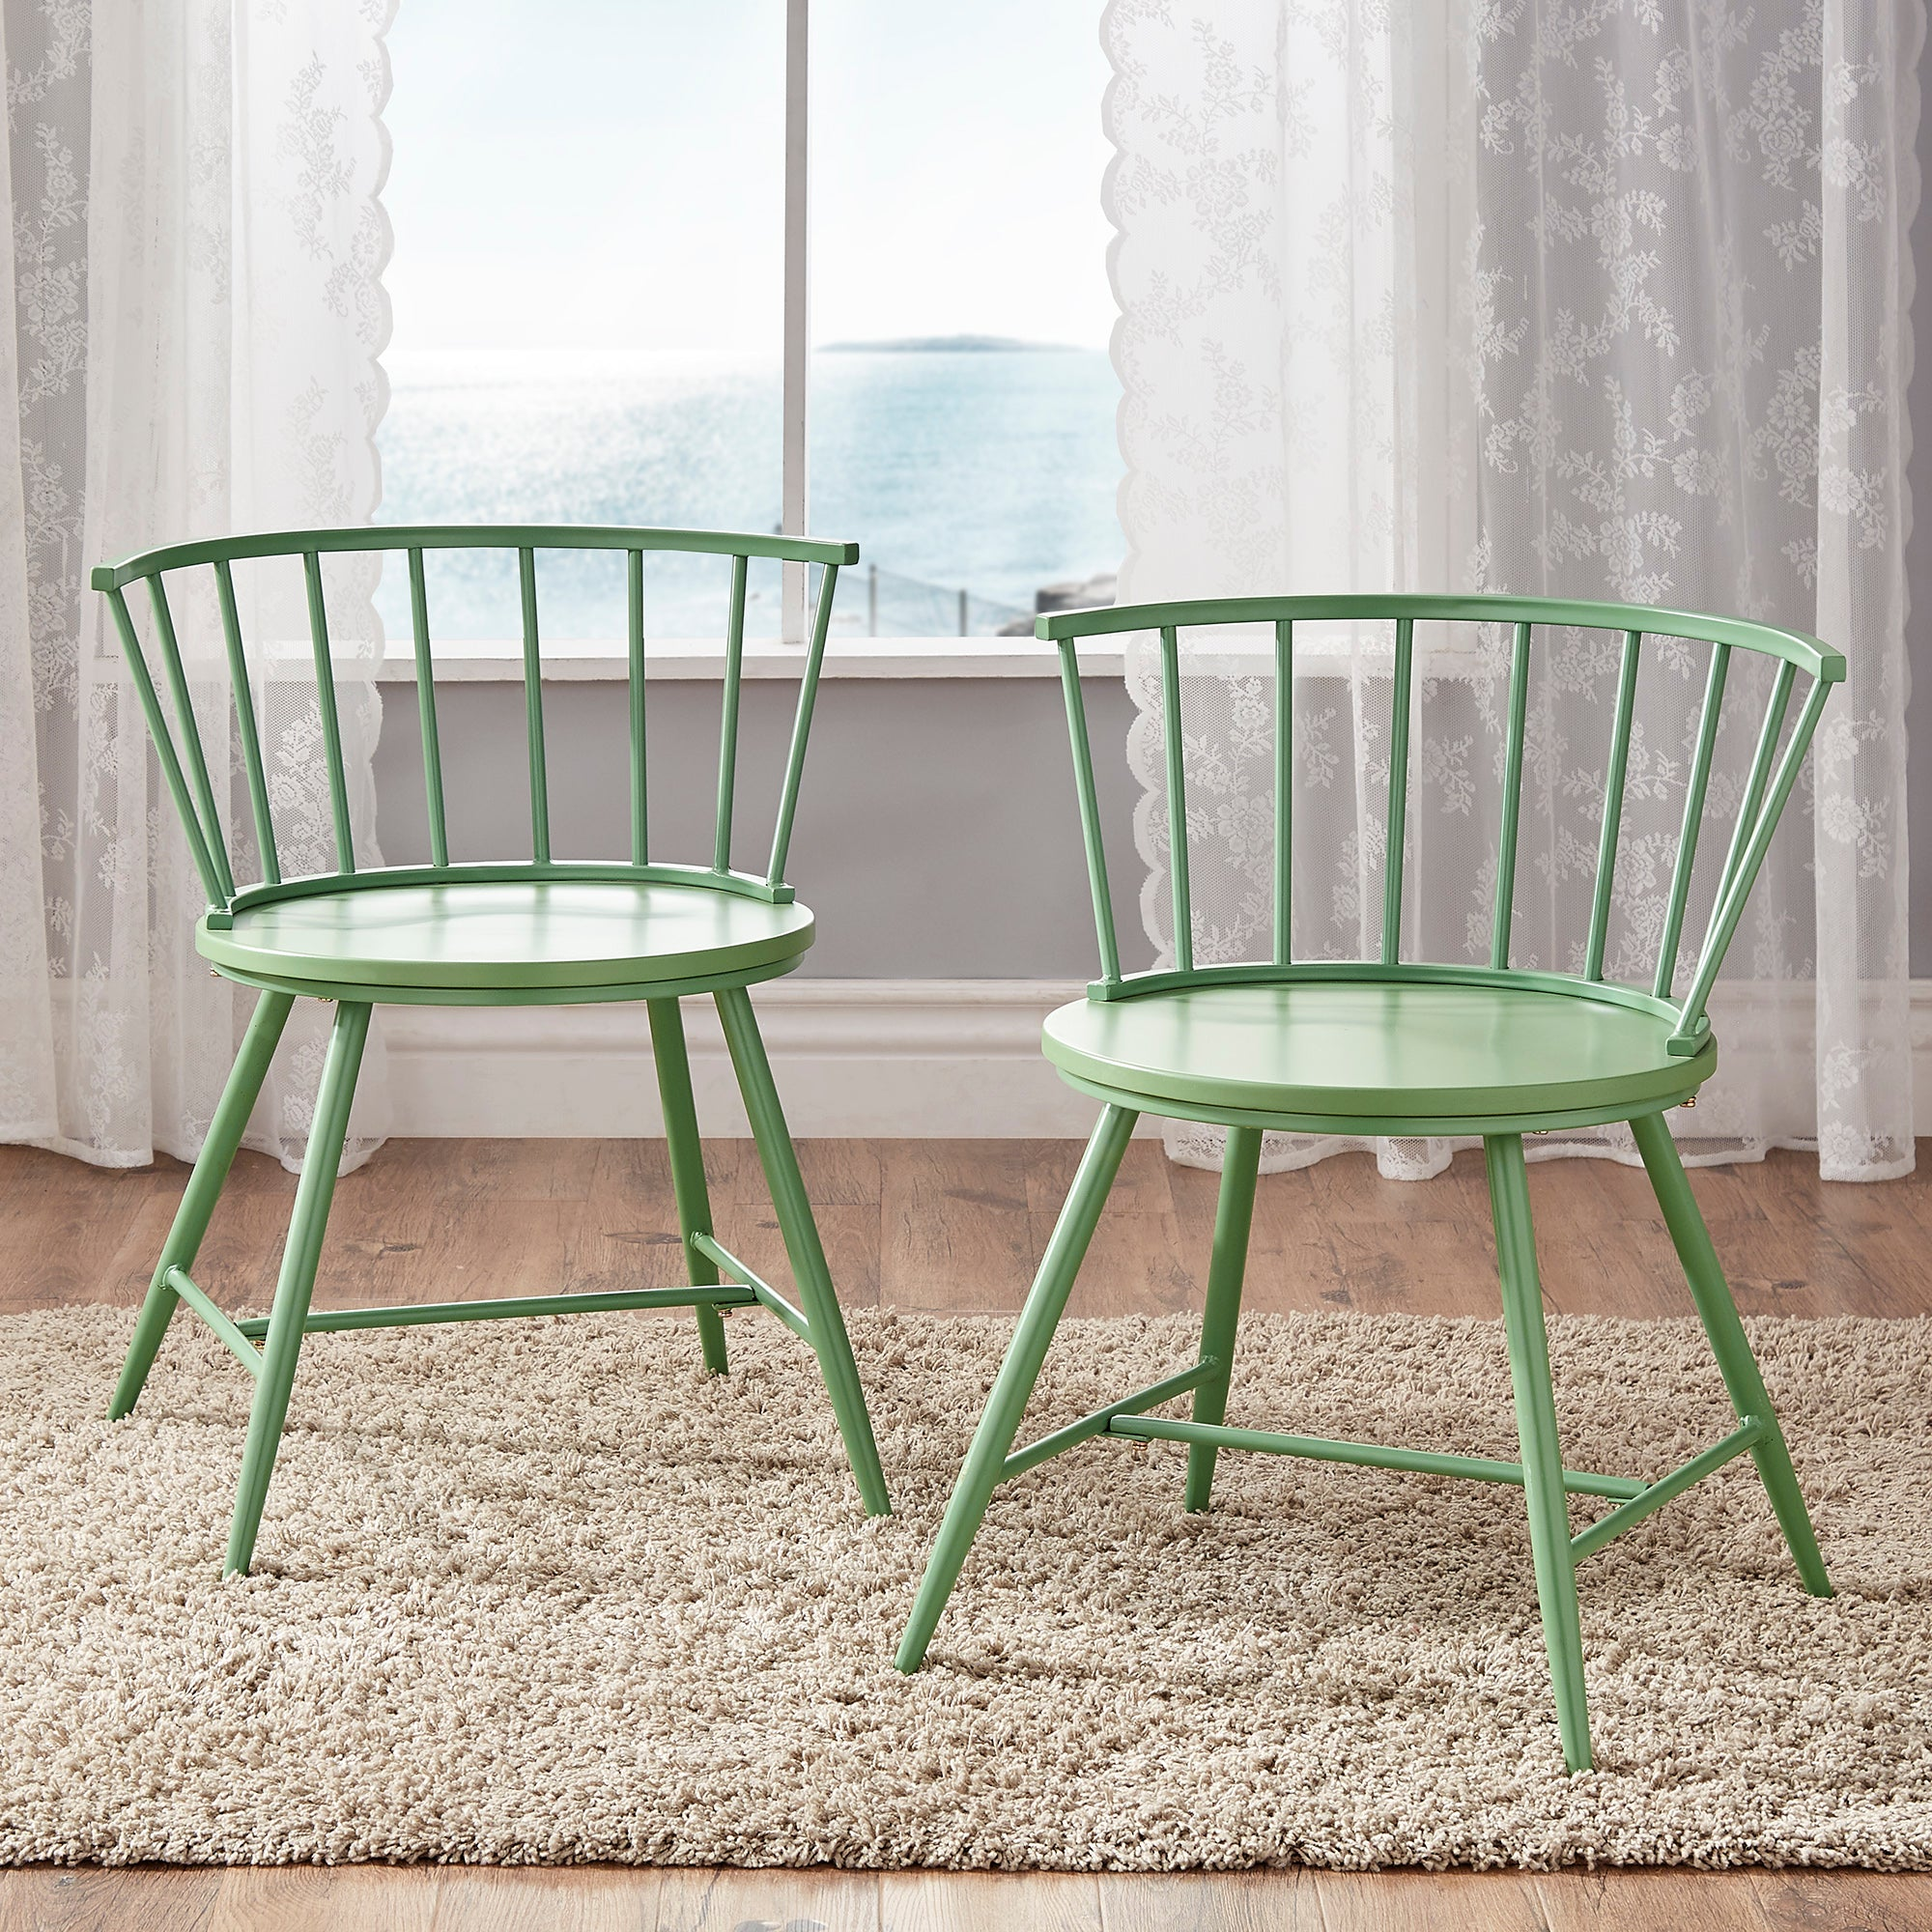 Low Back Windsor Classic Dining Chairs (Set of 2) - Meadow Green